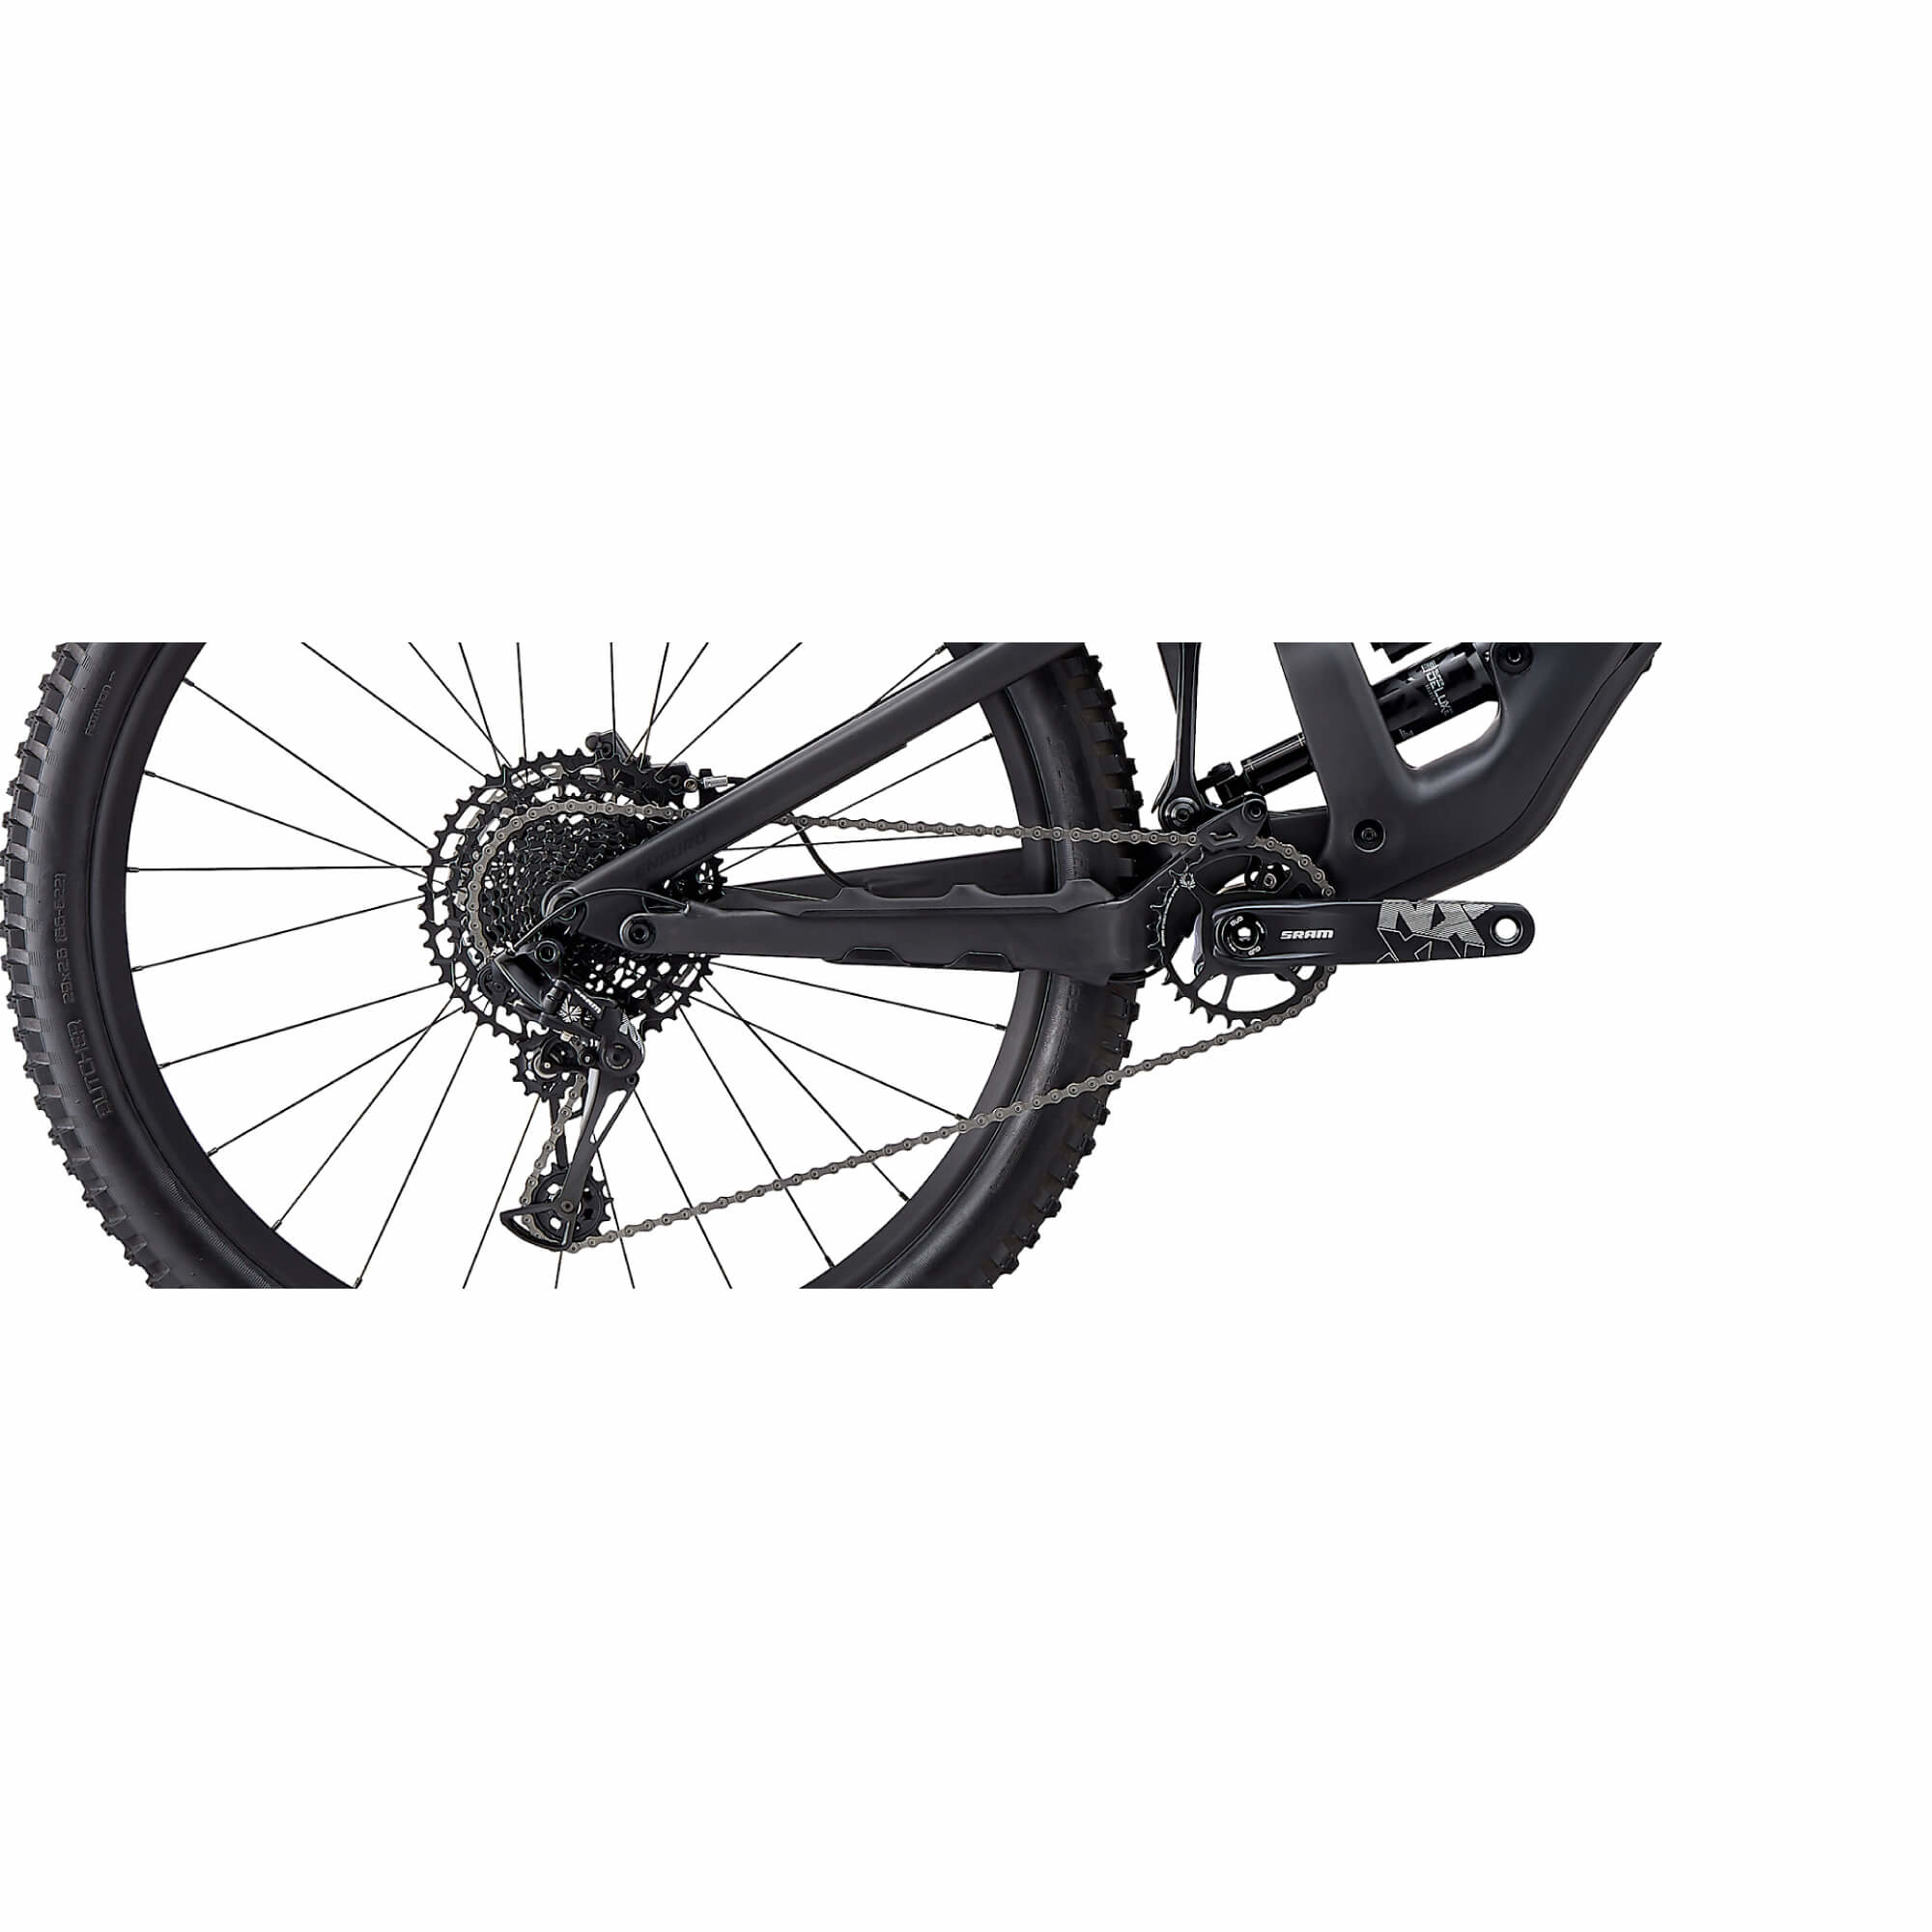 Enduro Comp Carbon 29 2020-3